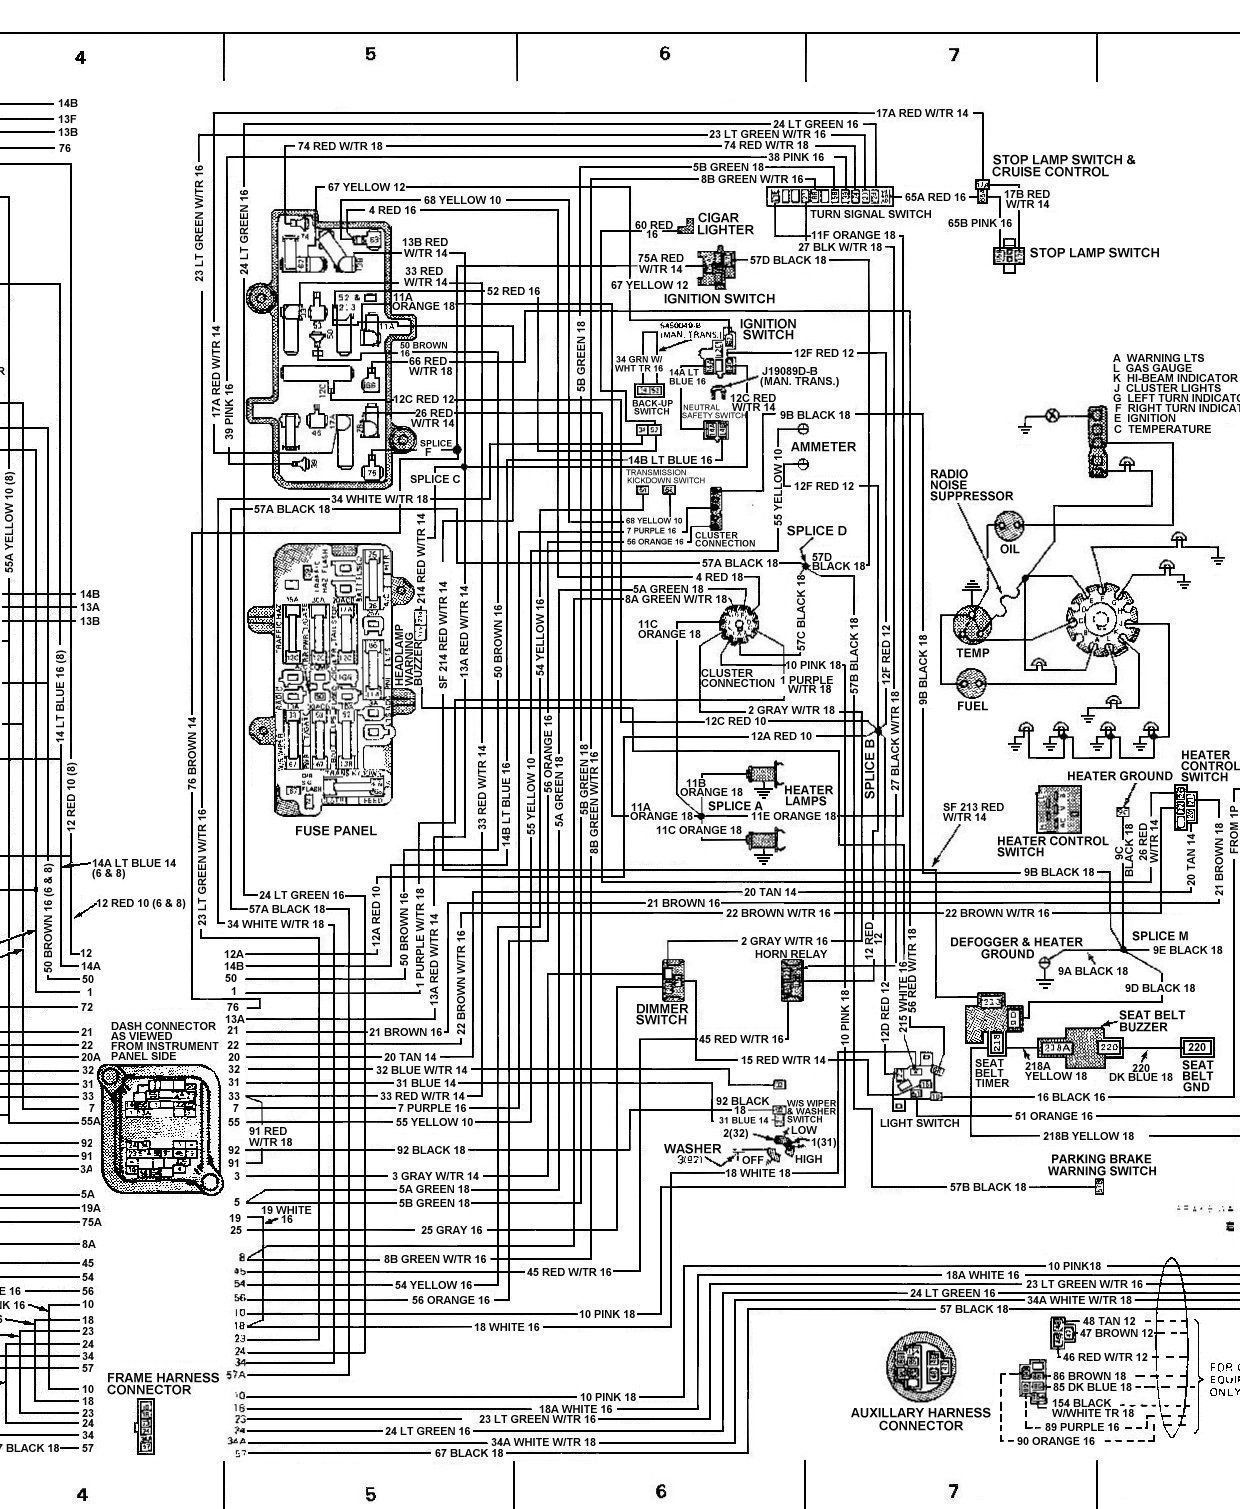 Jbl   Wiring In Prius 2005 86280 0w240 moreover 318970 Line Out Converter Help Needed Harness Wires Tap 2 besides Crank Sensor Location 68932 furthermore C Low Pressure Switch 3168981 together with 18029 1990 Celica Wiring Diagrams. on toyota sequoia wiring harness diagram